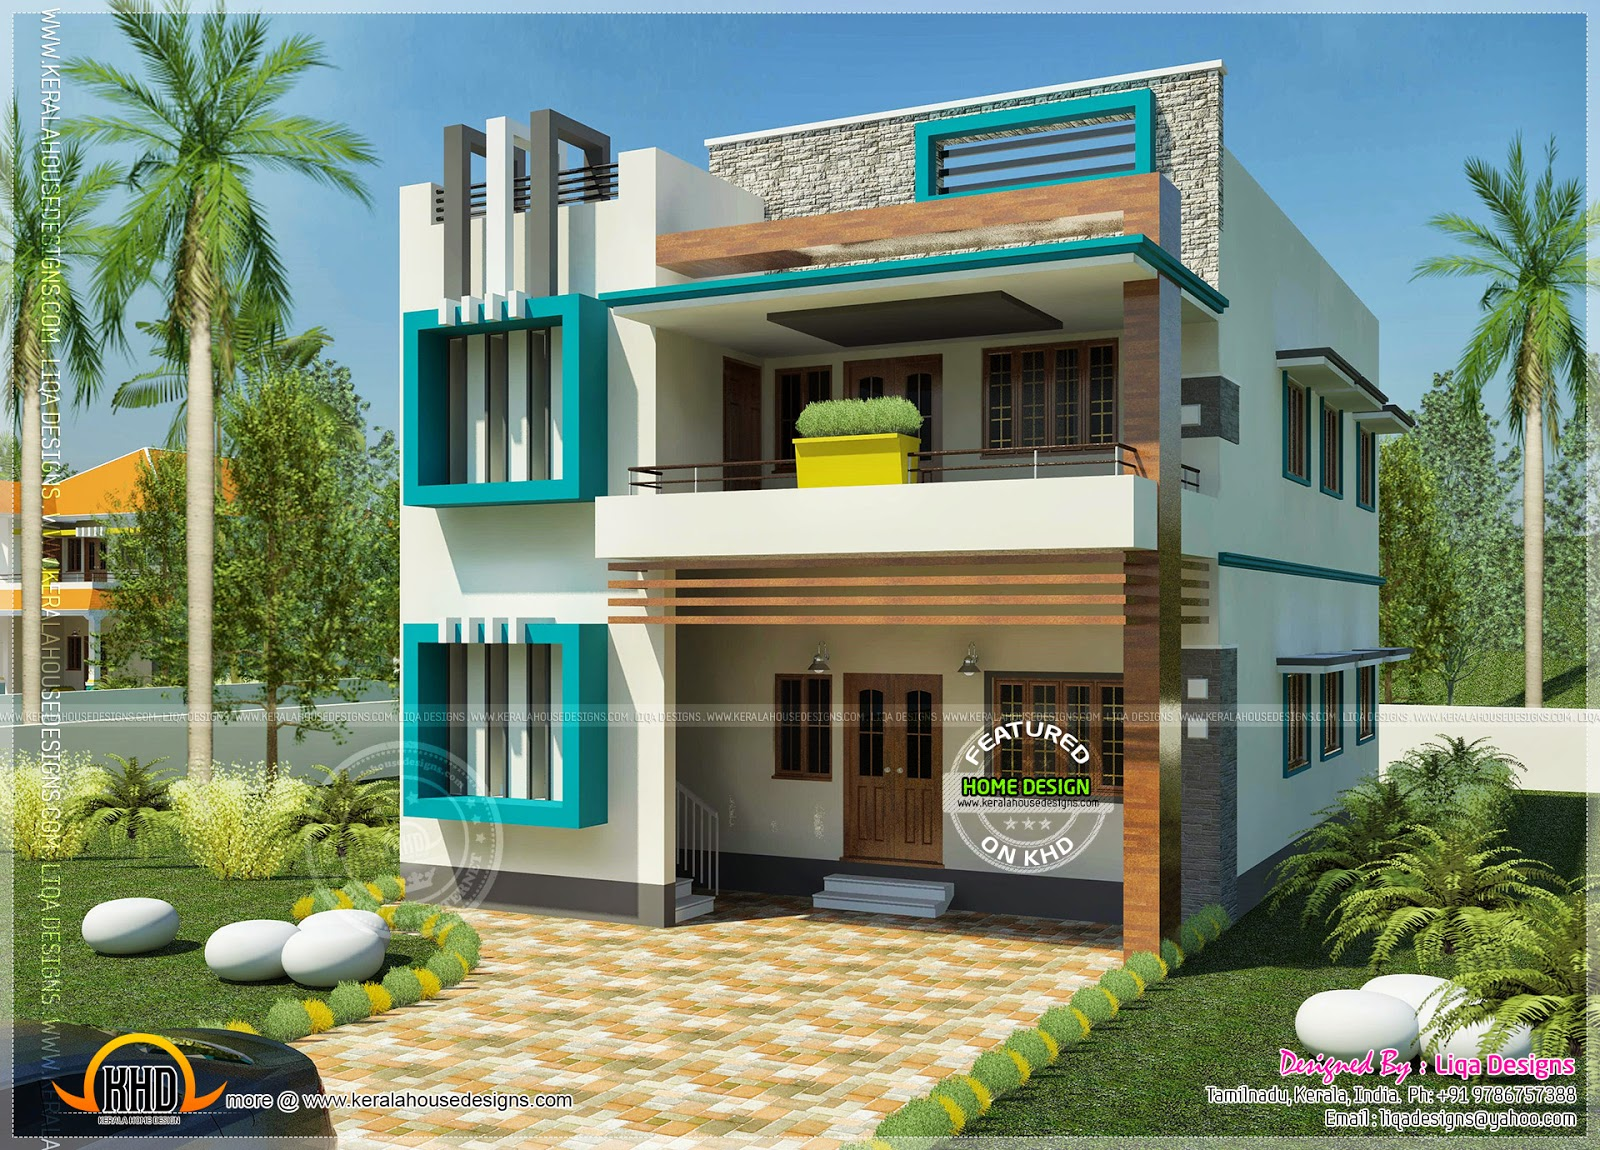 South indian contemporary home kerala home design and floor plans Gorgeous small bedroom designs for indian homes